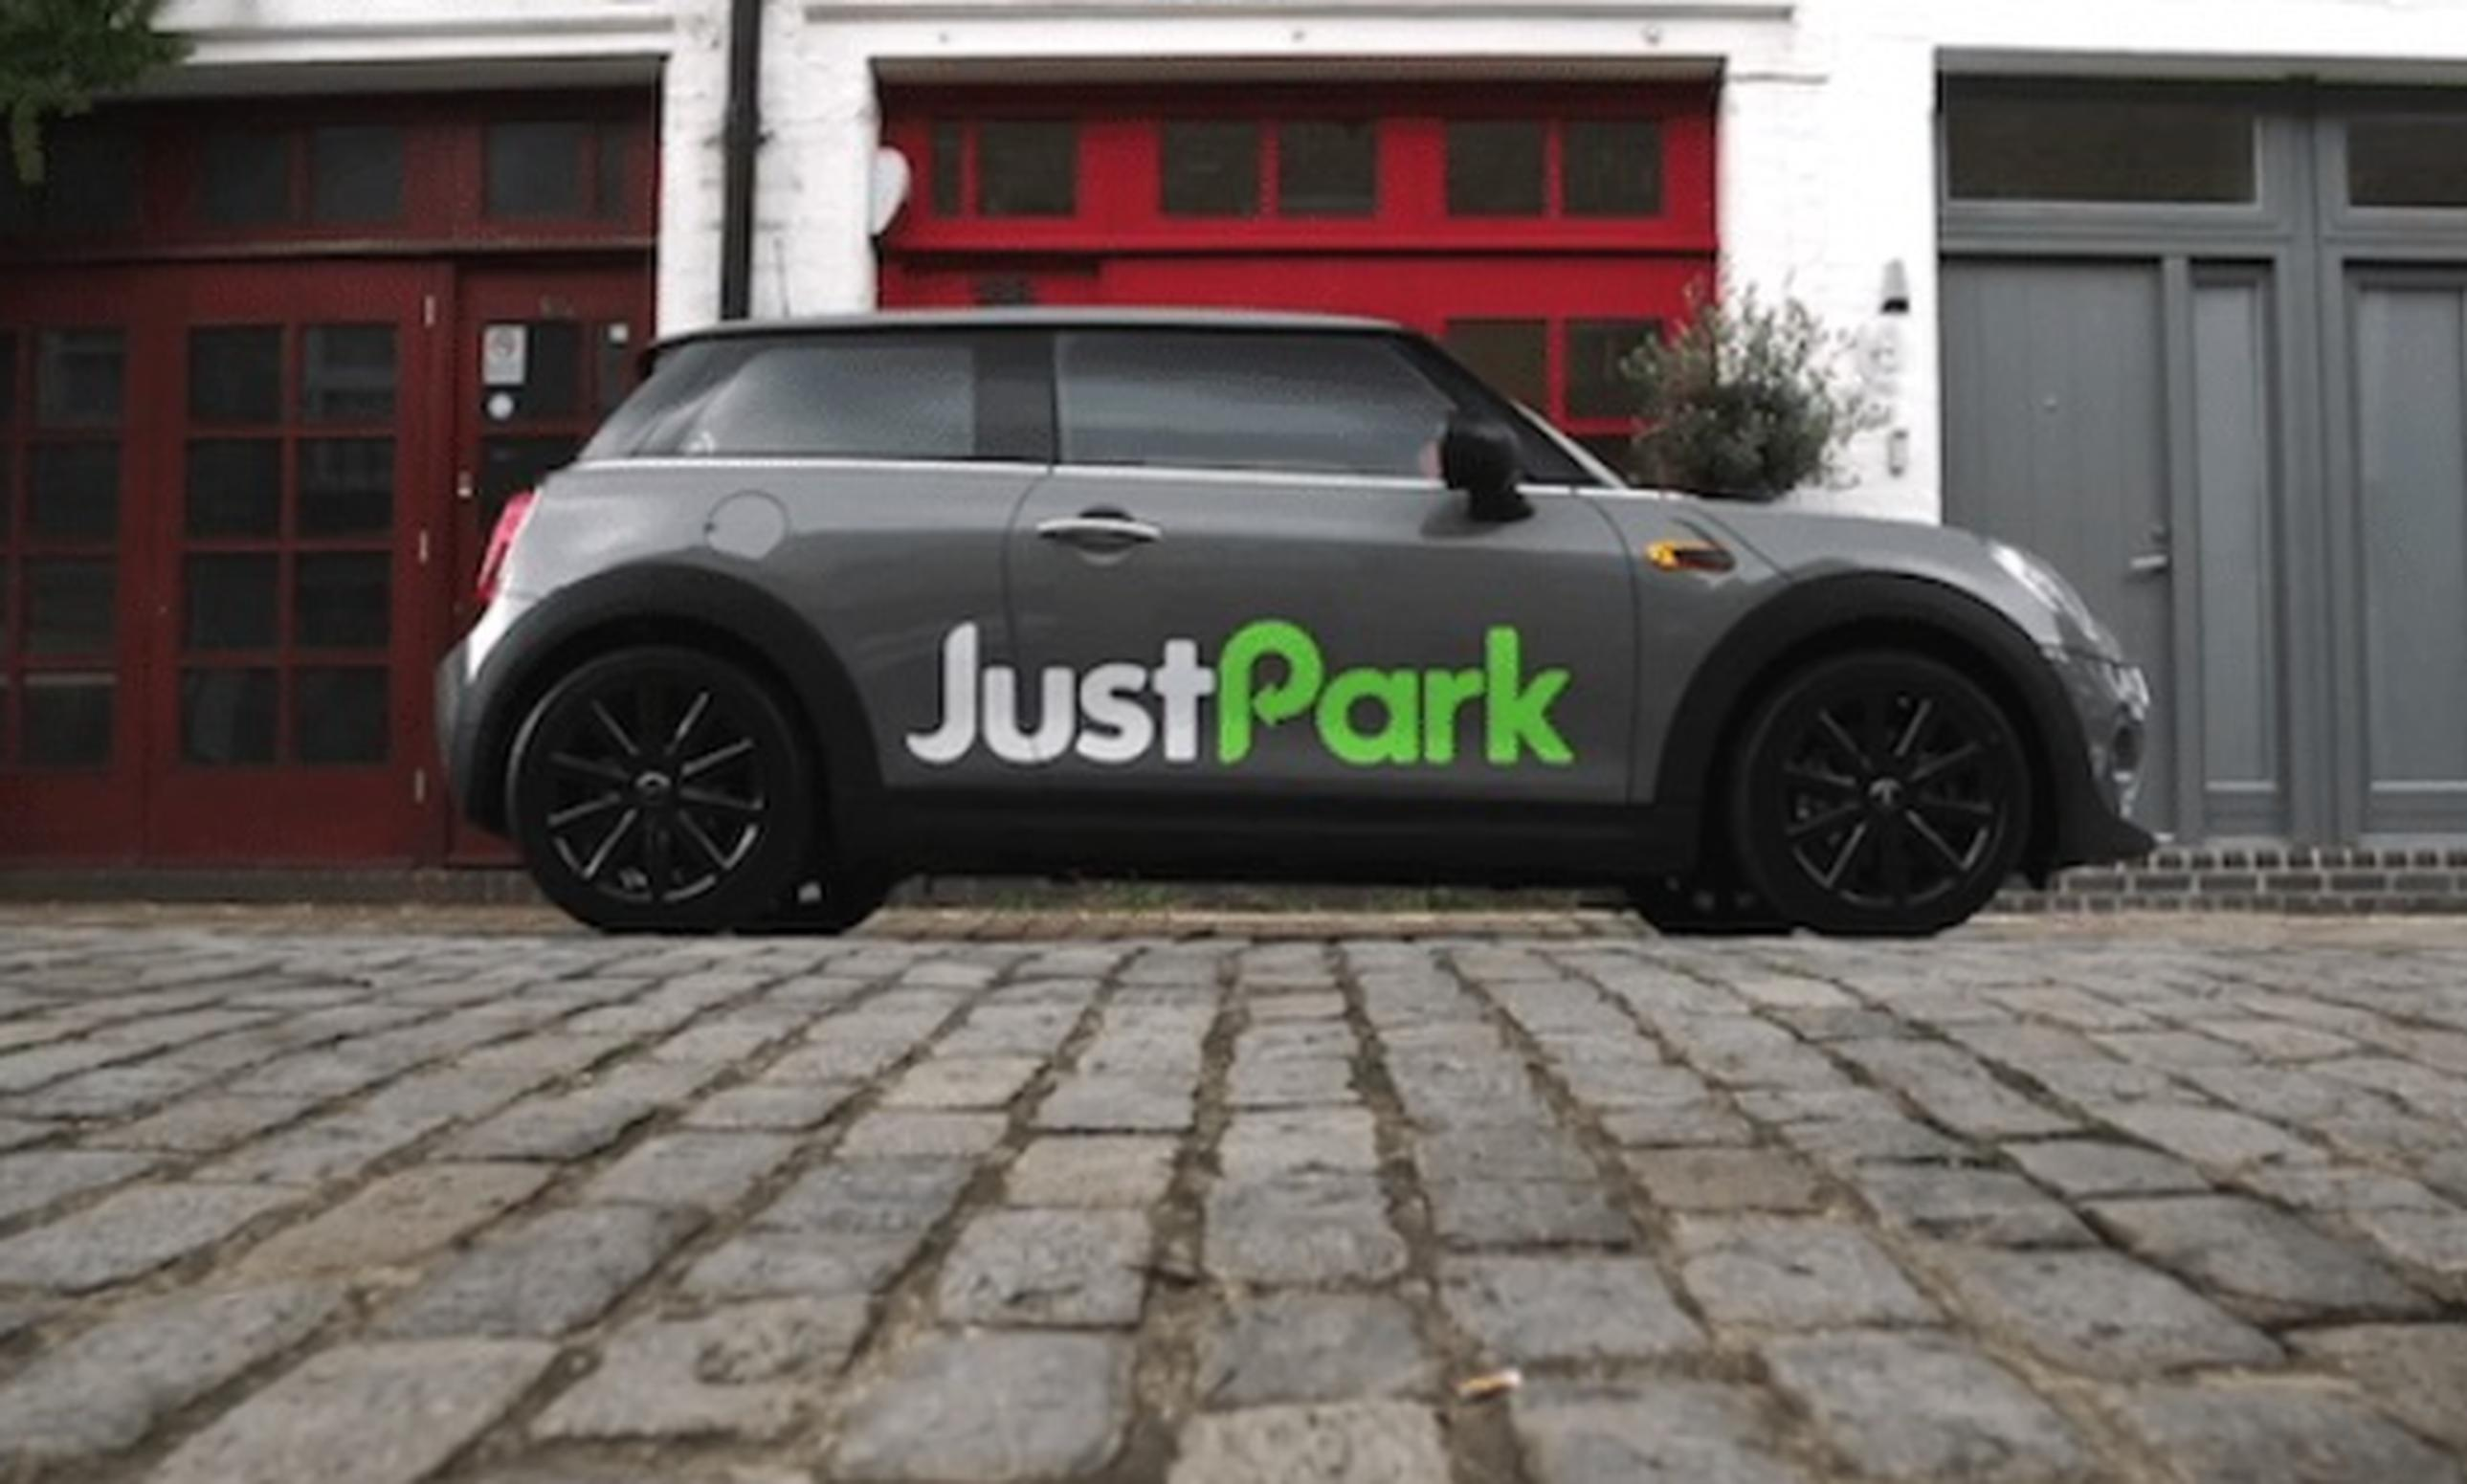 JustPark provides access to over 150,000 spaces